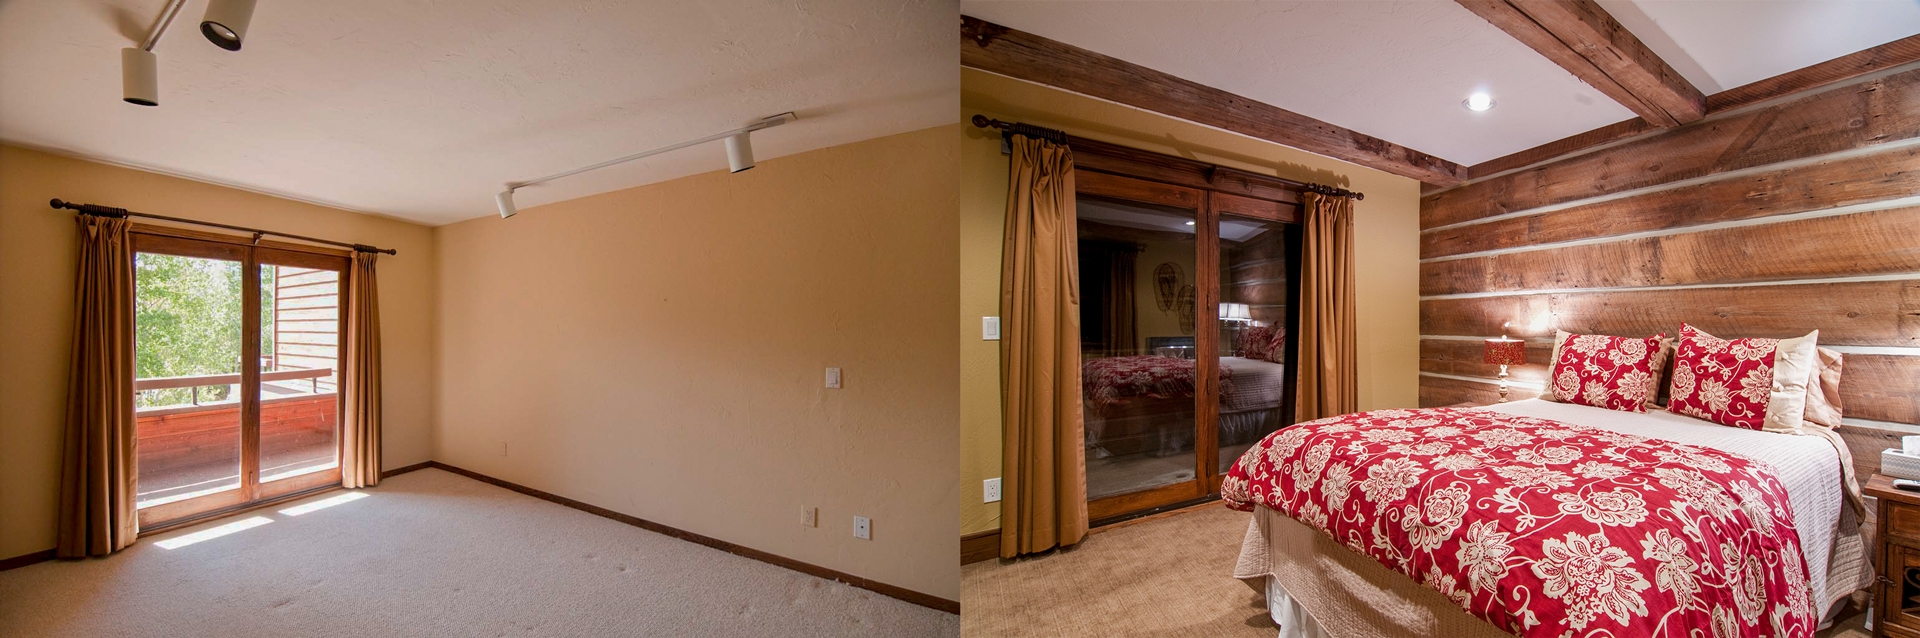 Somrak Concept and Design - Crested Butte Historic Renovation - Before and After Photos